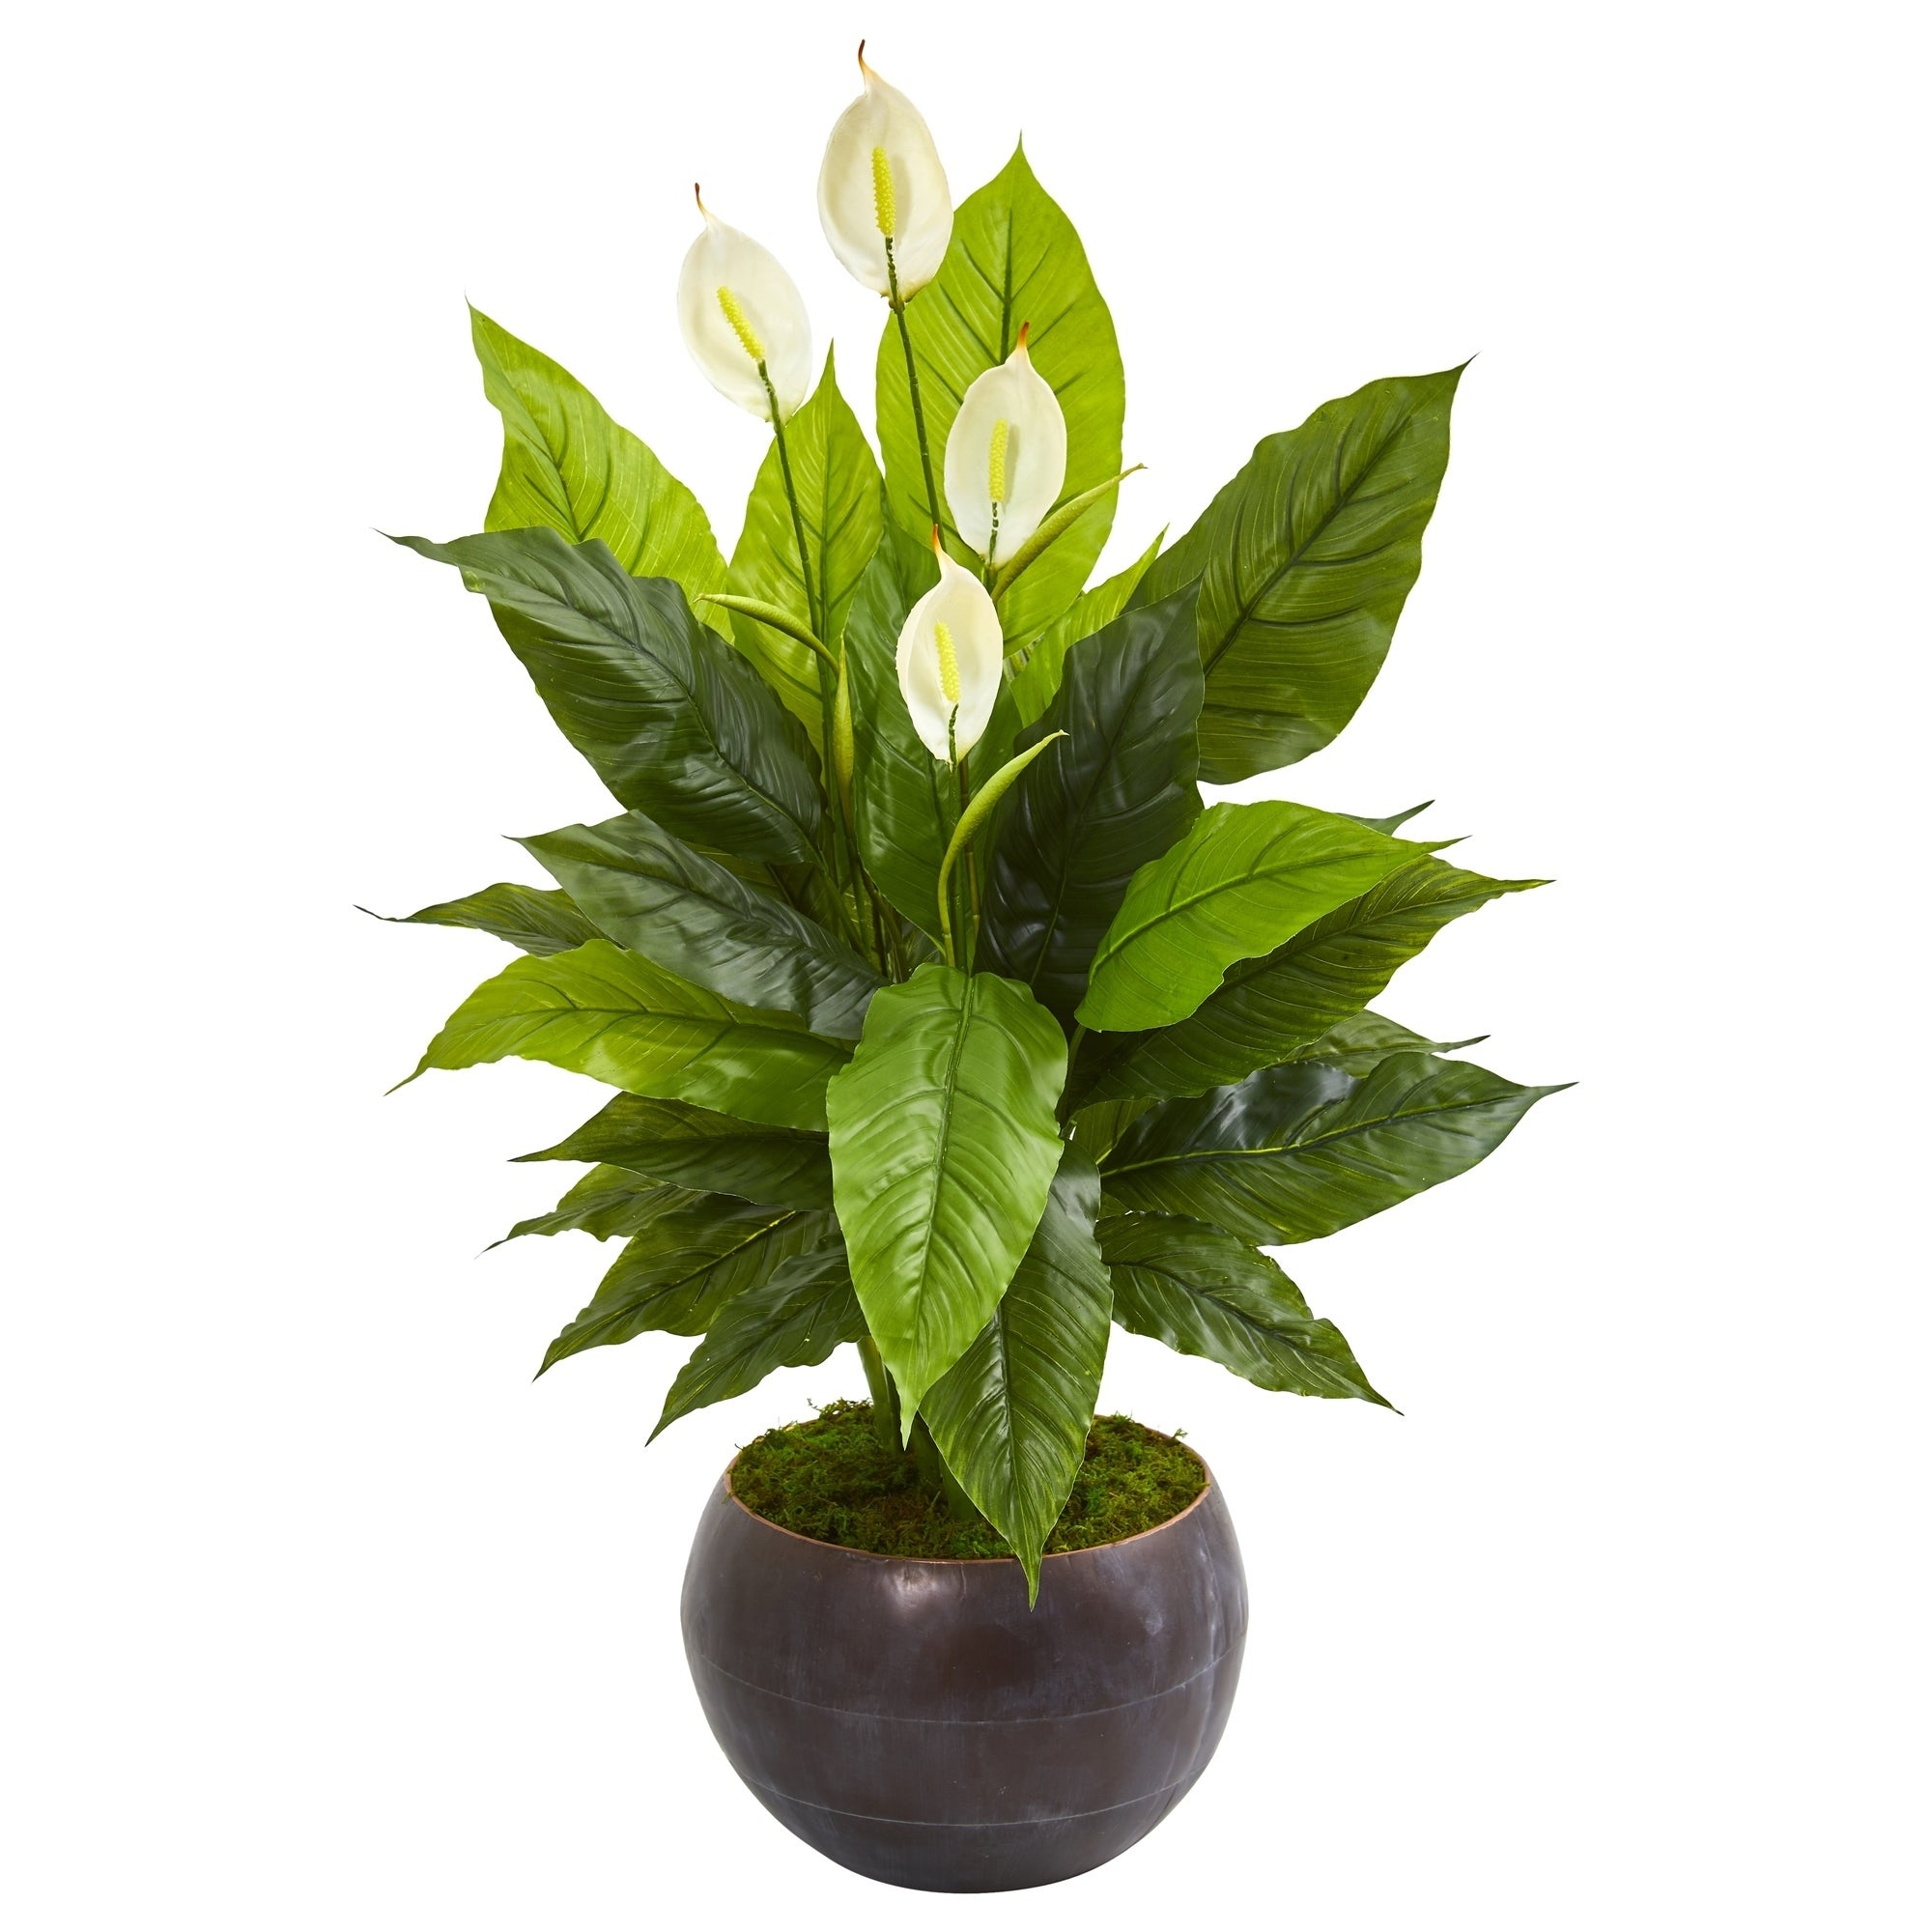 44 Spathiphyllum Artificial Plant in Metal Bowl (Real Touch)